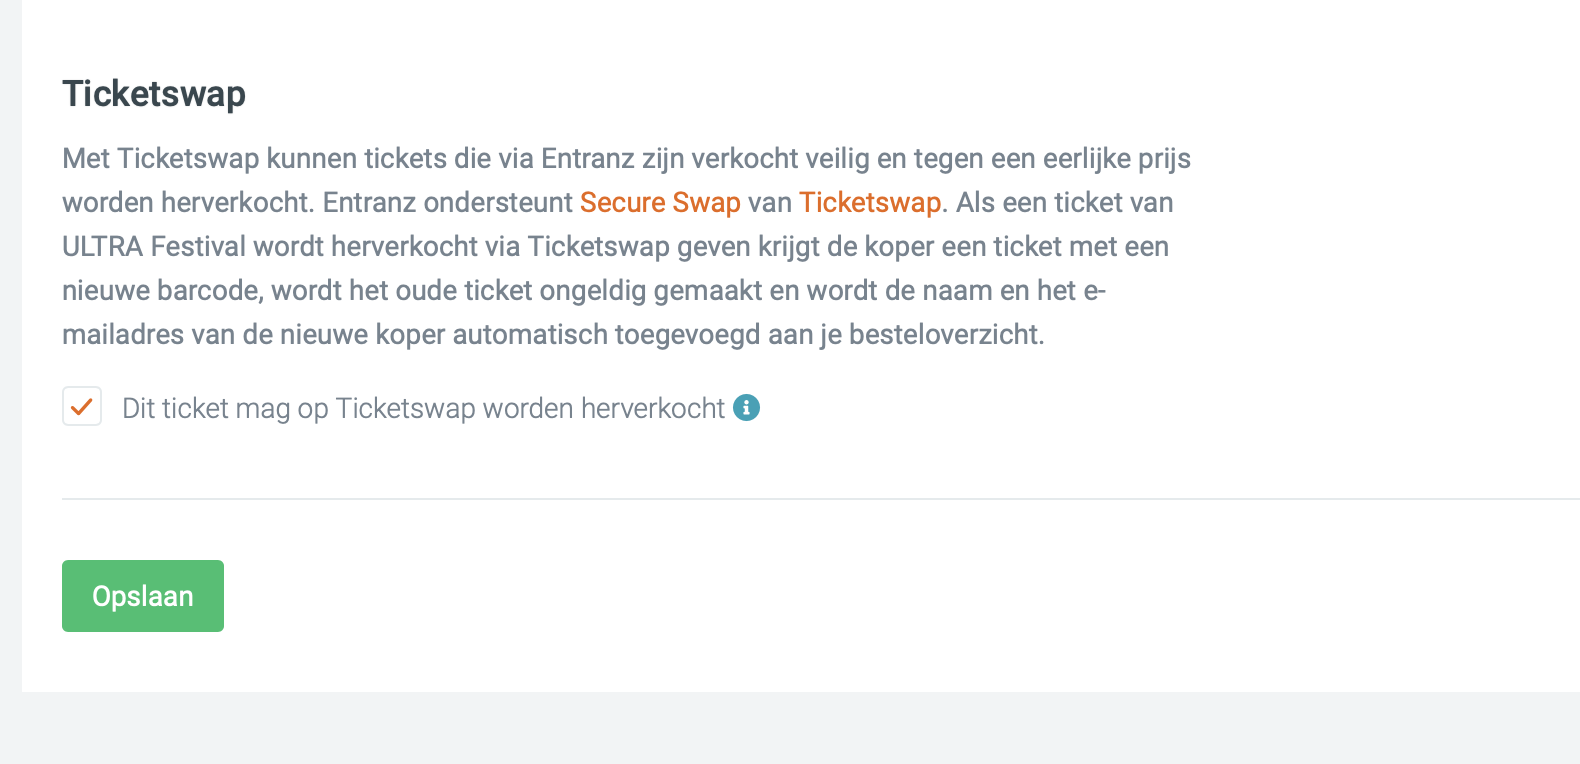 Geef per ticket type aan of het ticket via Ticketswap Secureswap mag worden herverkocht.